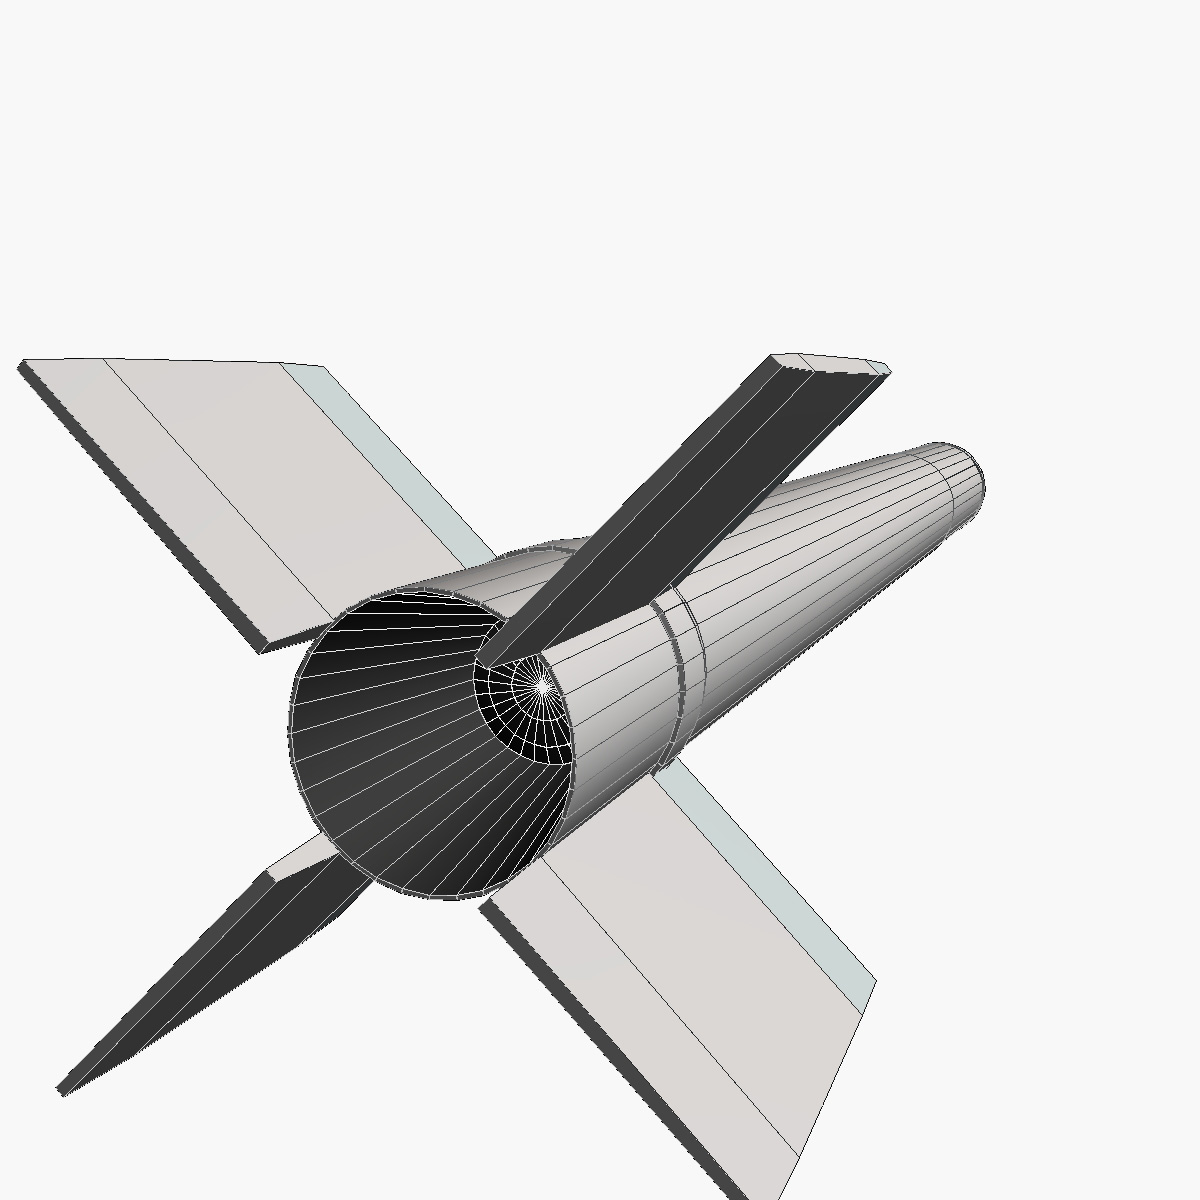 canopus ii rocket 3d model 3ds dxf fbx blend cob dae x obj 217724